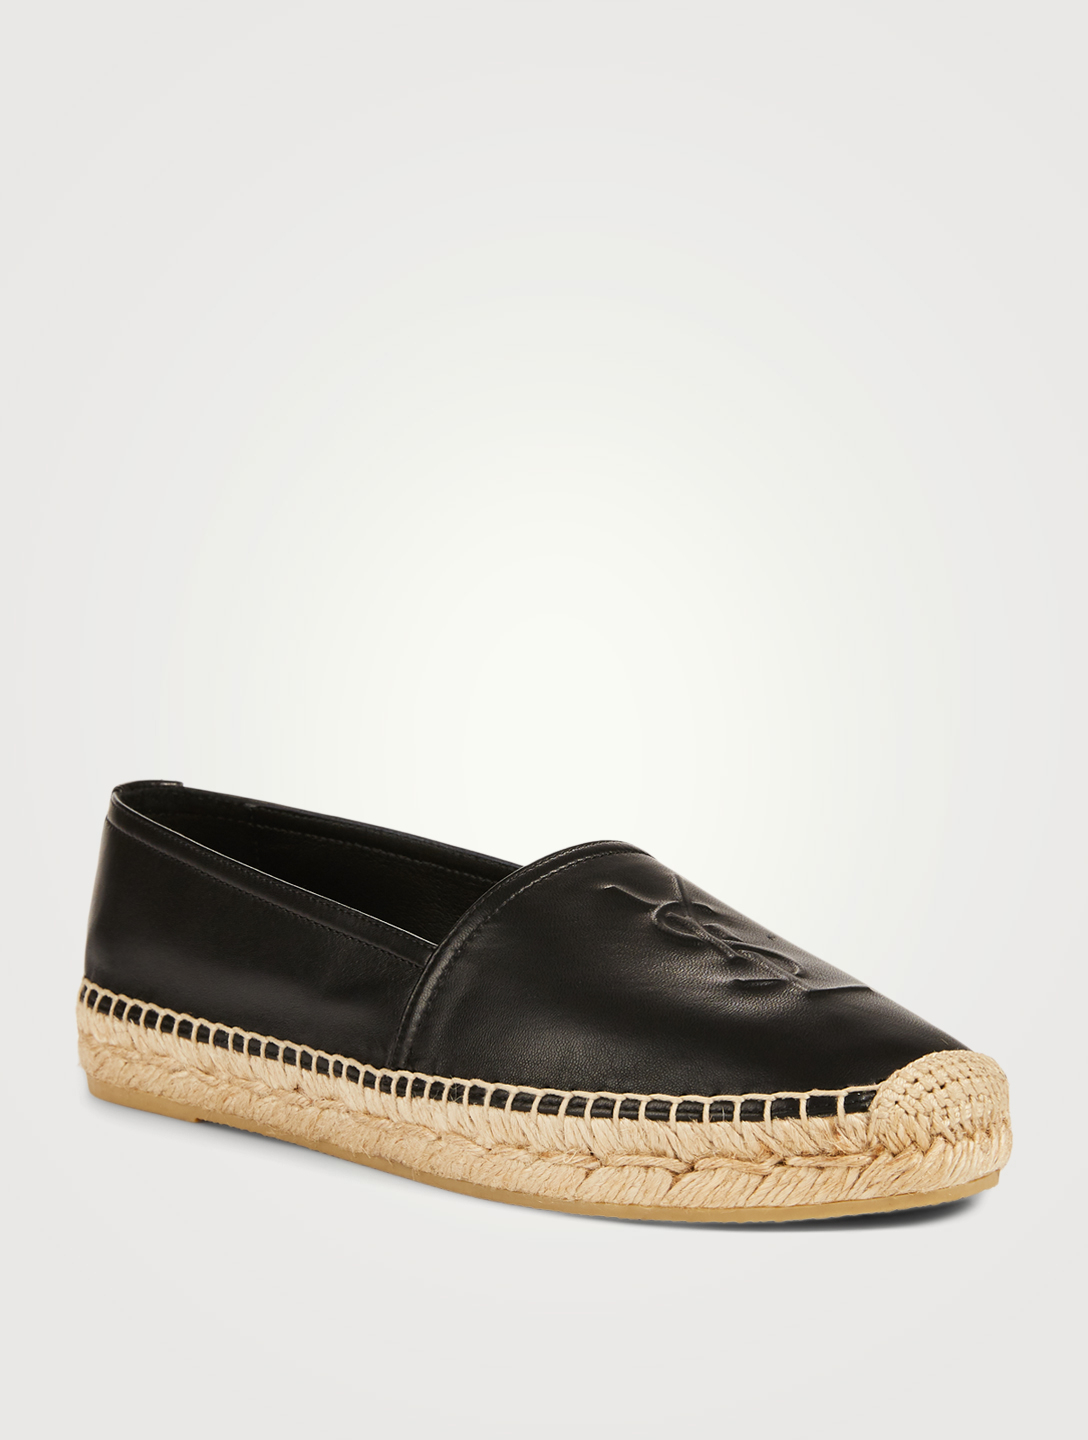 SAINT LAURENT YSL Monogram Leather Espadrilles Women's Black